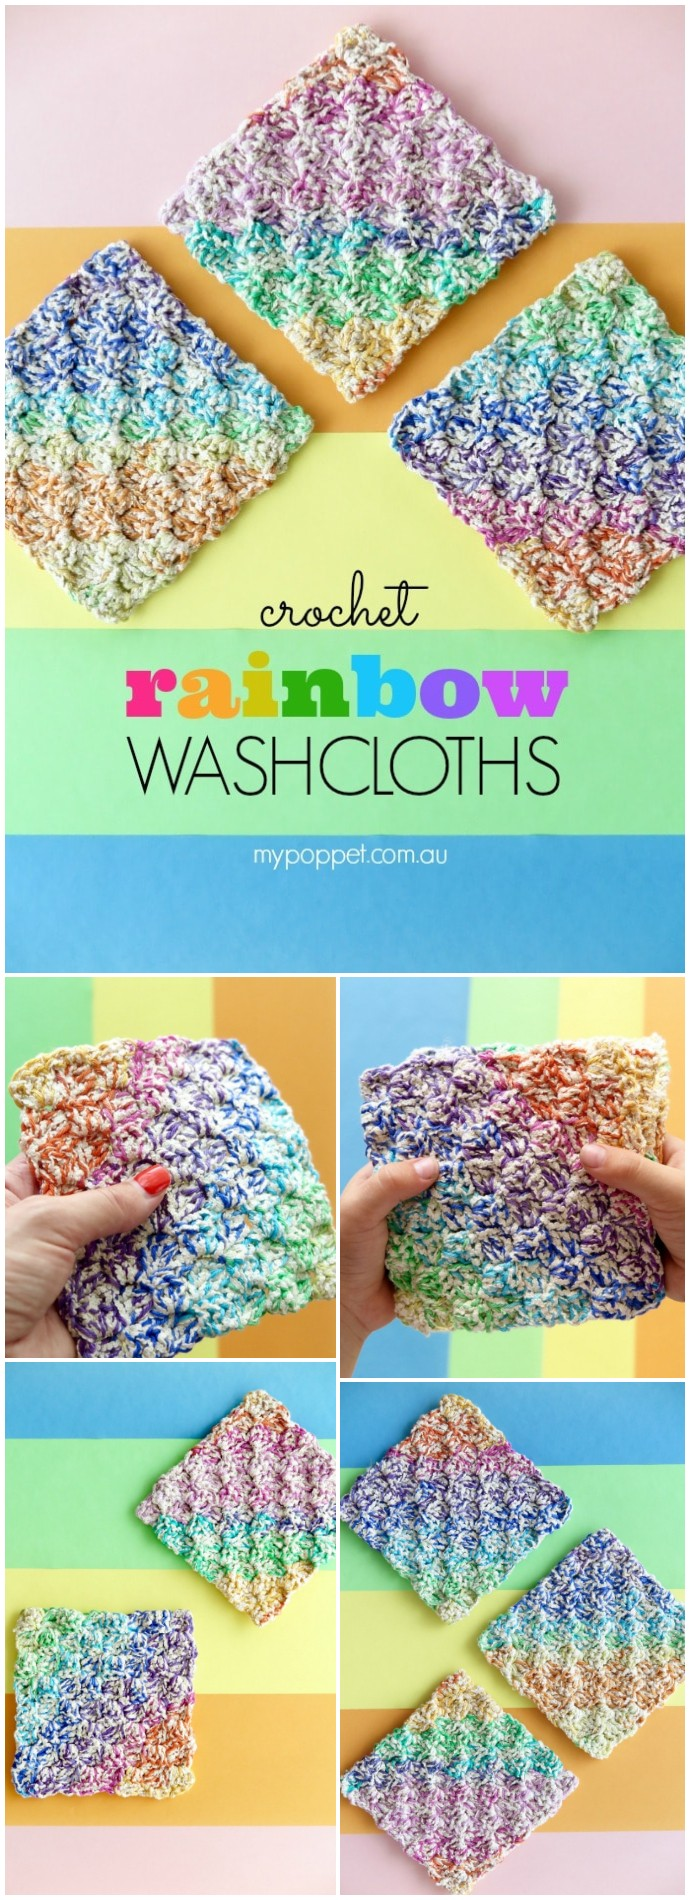 Rainbow Free Crochet Washcloths